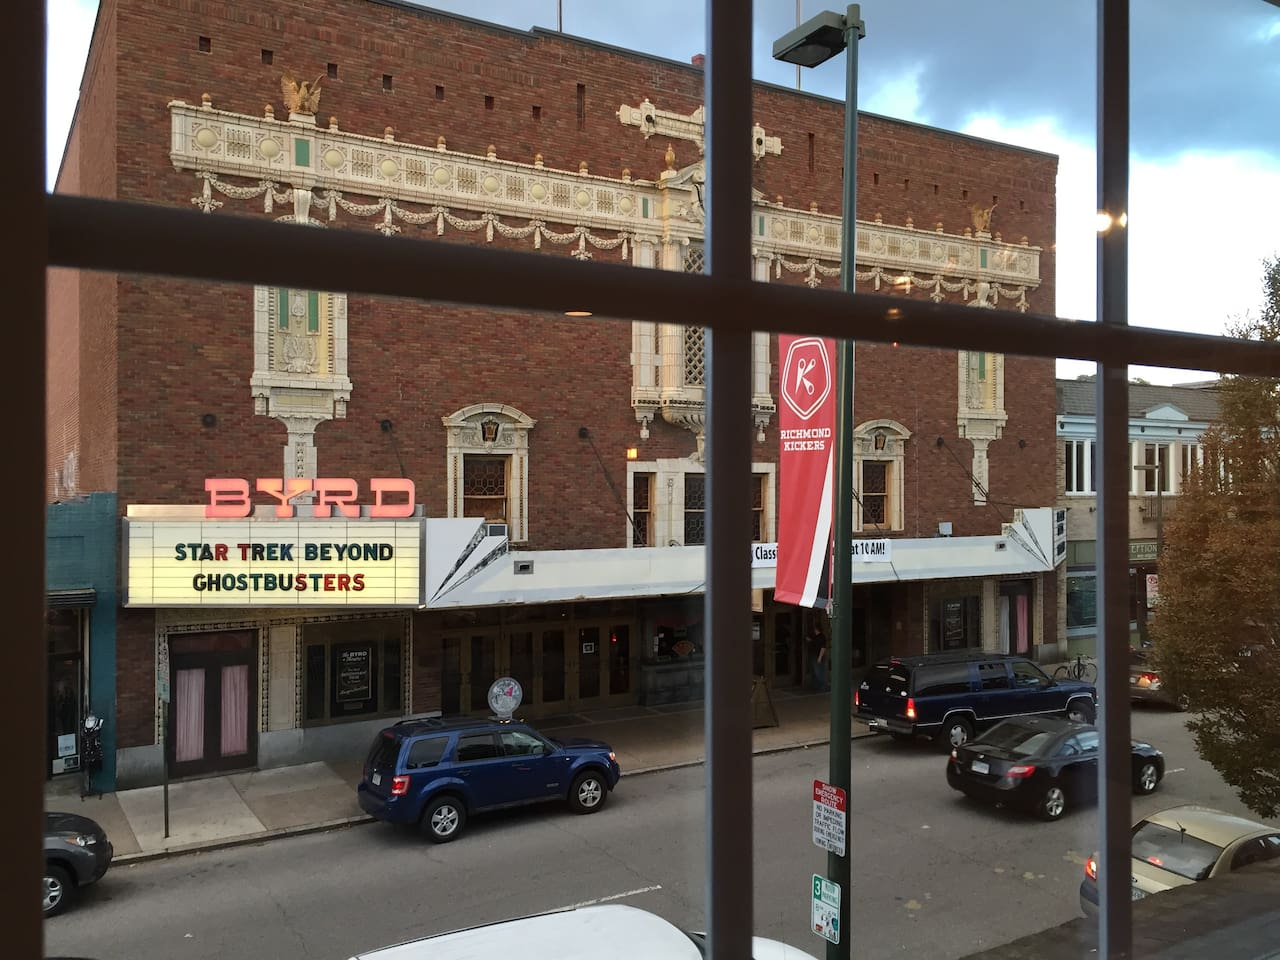 View from Living Room of Byrd Theater